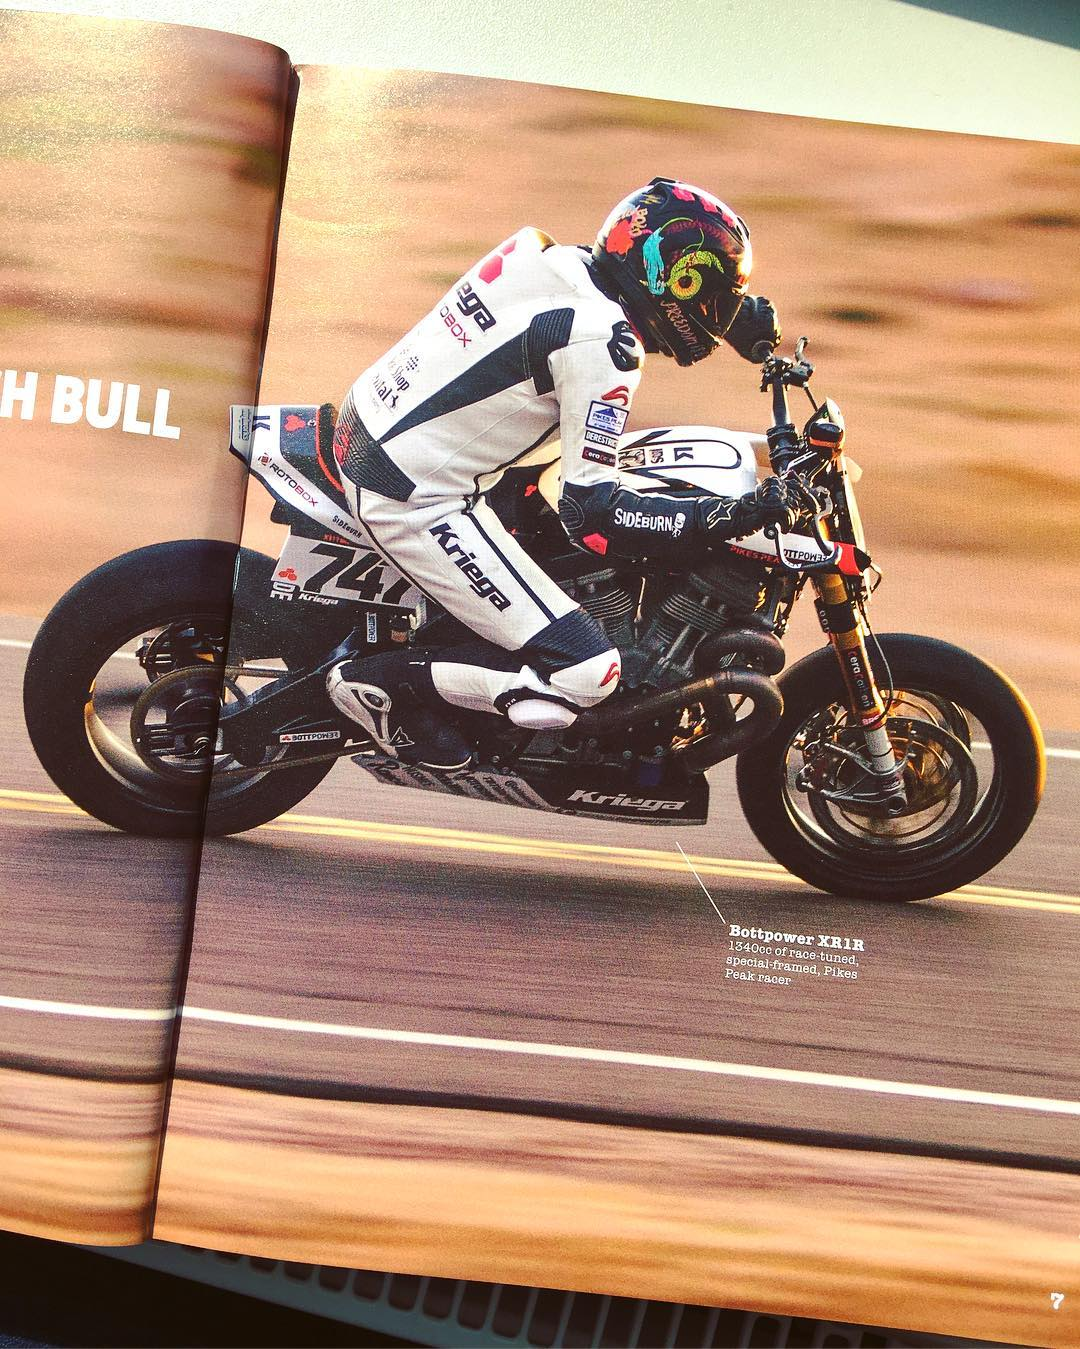 Shot of the highly tuned 1340cc @bottpower #xr1r we worked on the graphics for in the latest @sideburnmag . Get issue 30 from the sideburn website for the full Pikes peak story! #de_portfolio